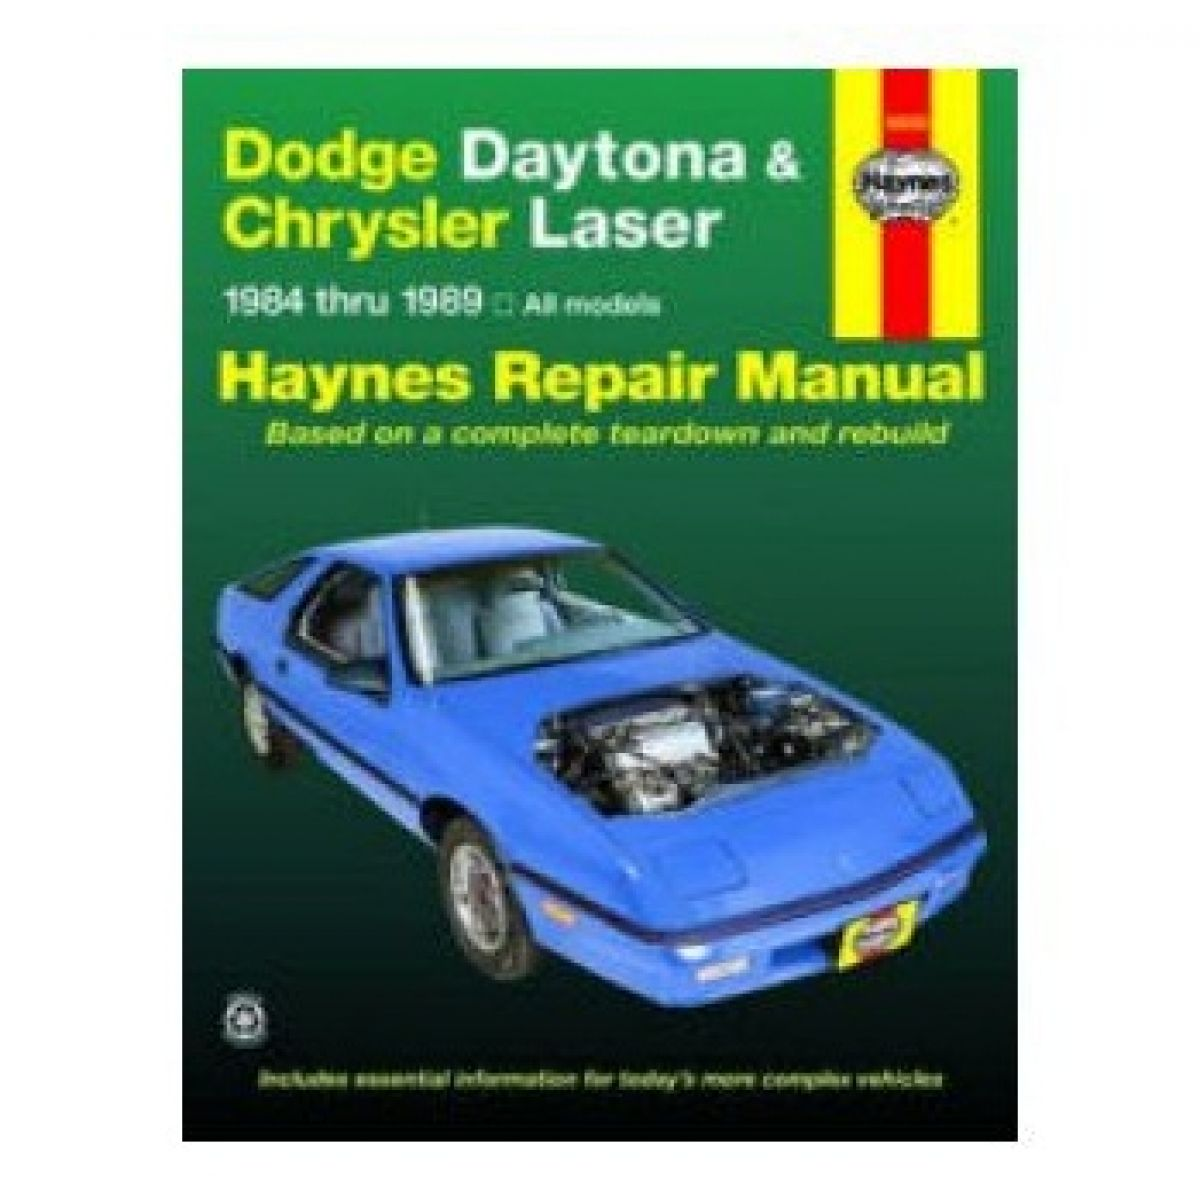 Haynes Repair Manual for 84-89 Dodge Daytona Chrysler Laser